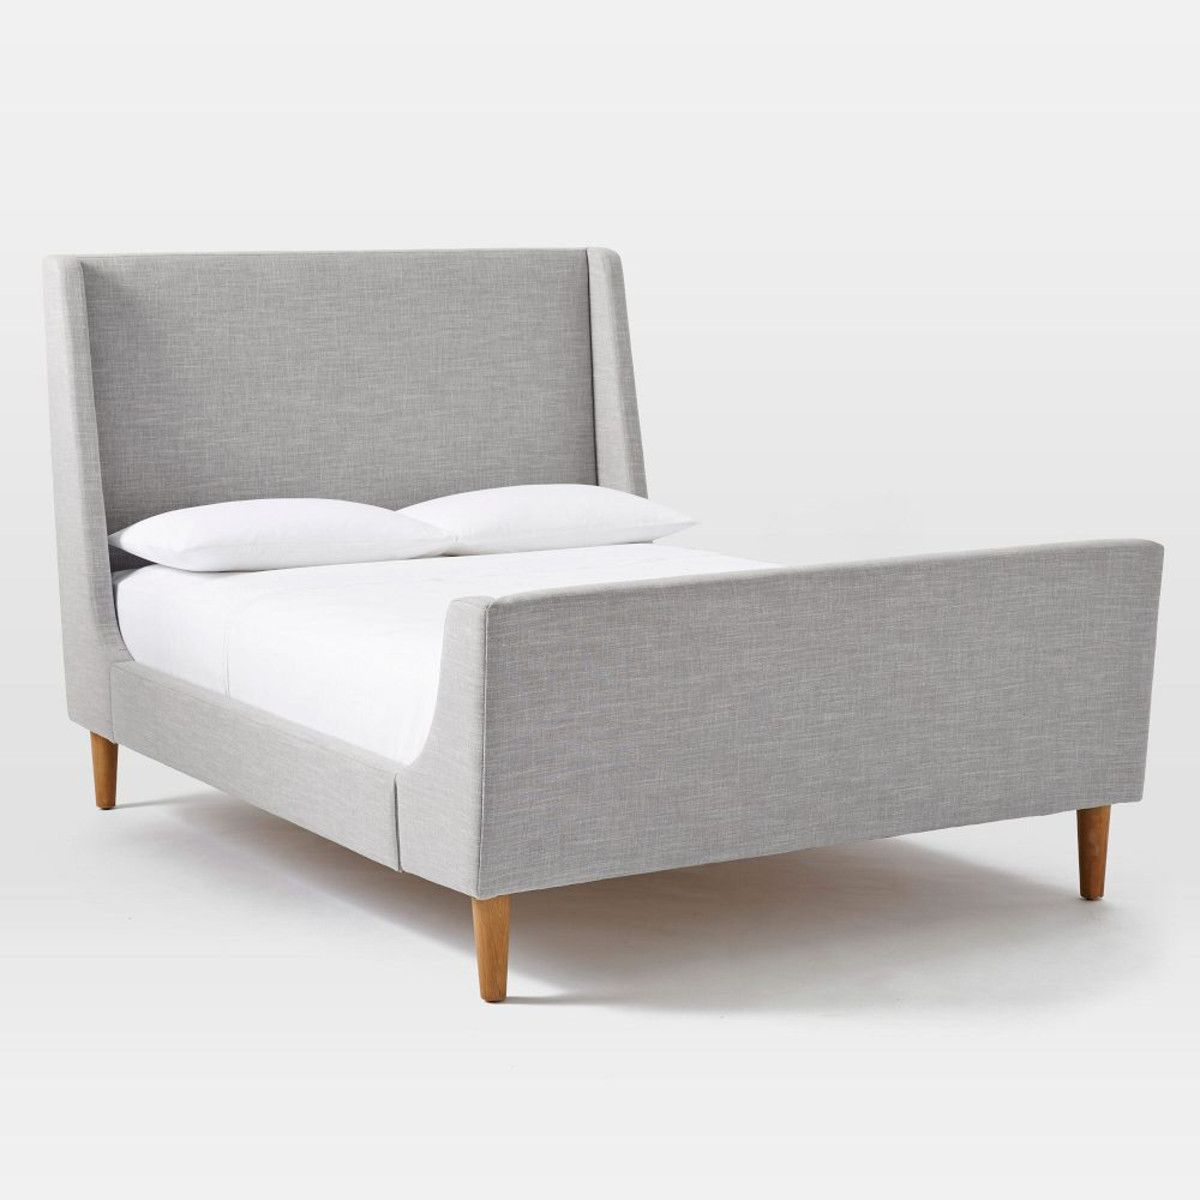 Upholstered Sleigh Bed £899 | Favorite Places & Spaces | Pinterest